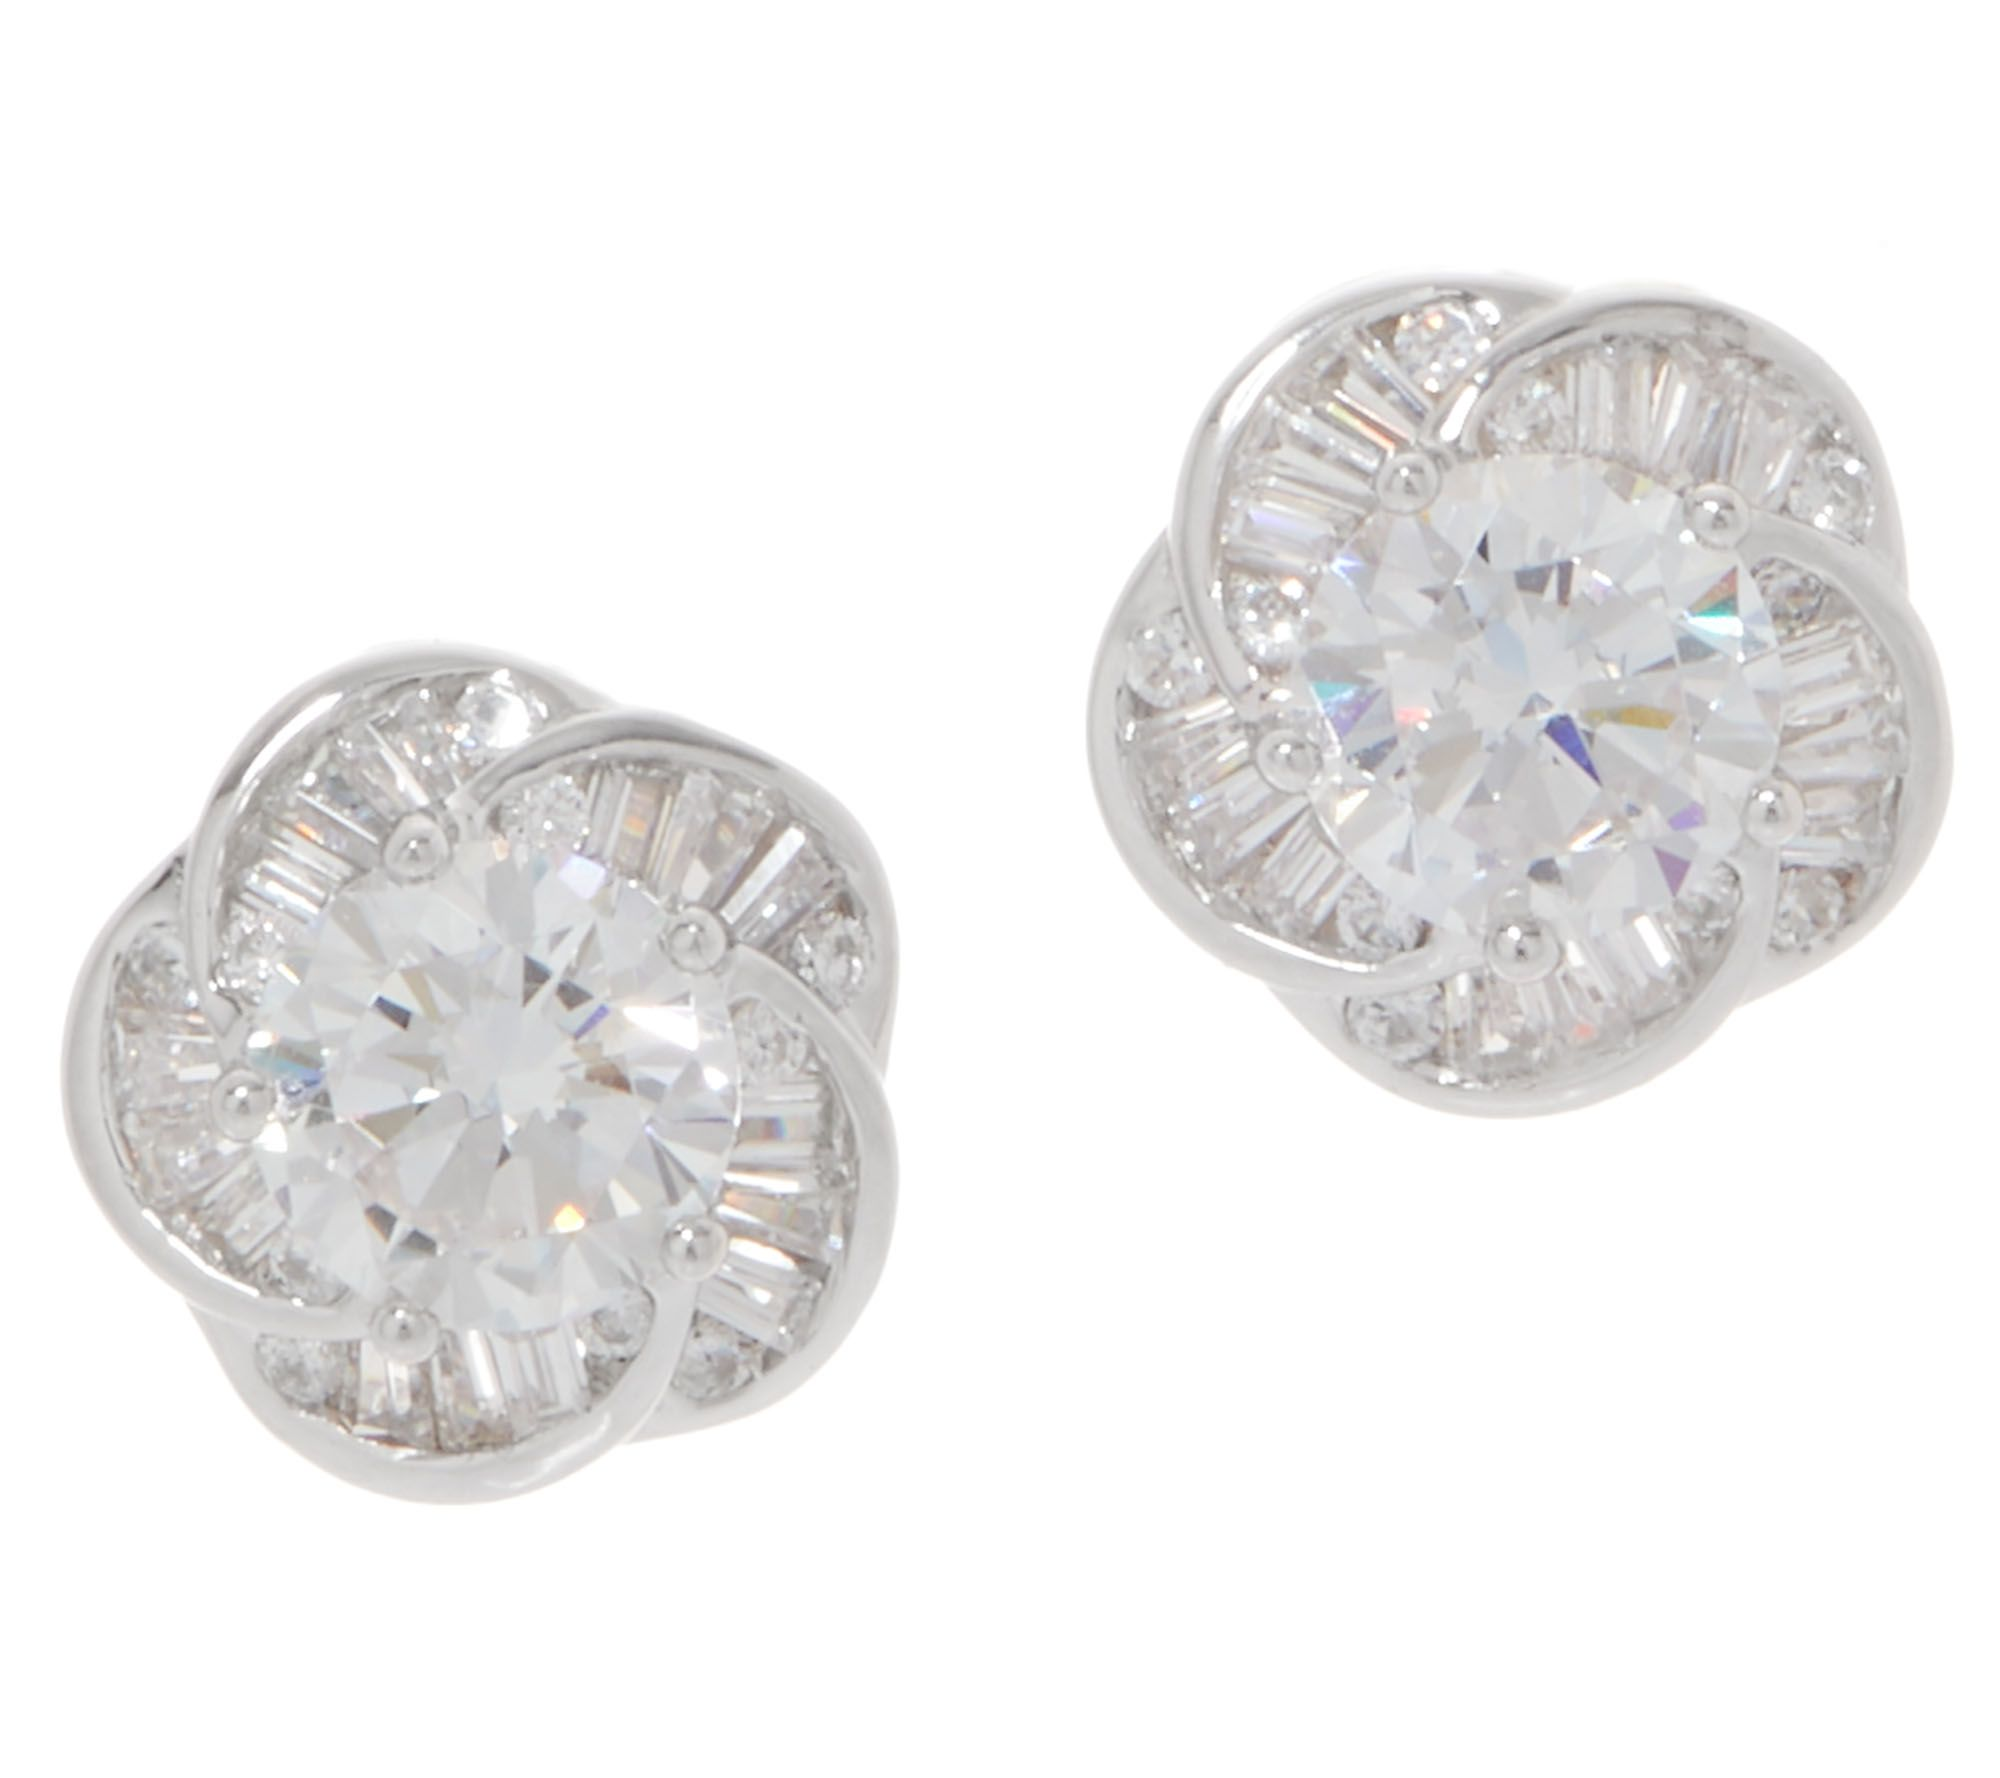 1b8349f45 Diamonique Baguette and Round Floral Stud Earrings, Sterling Silver - Page  1 — QVC.com